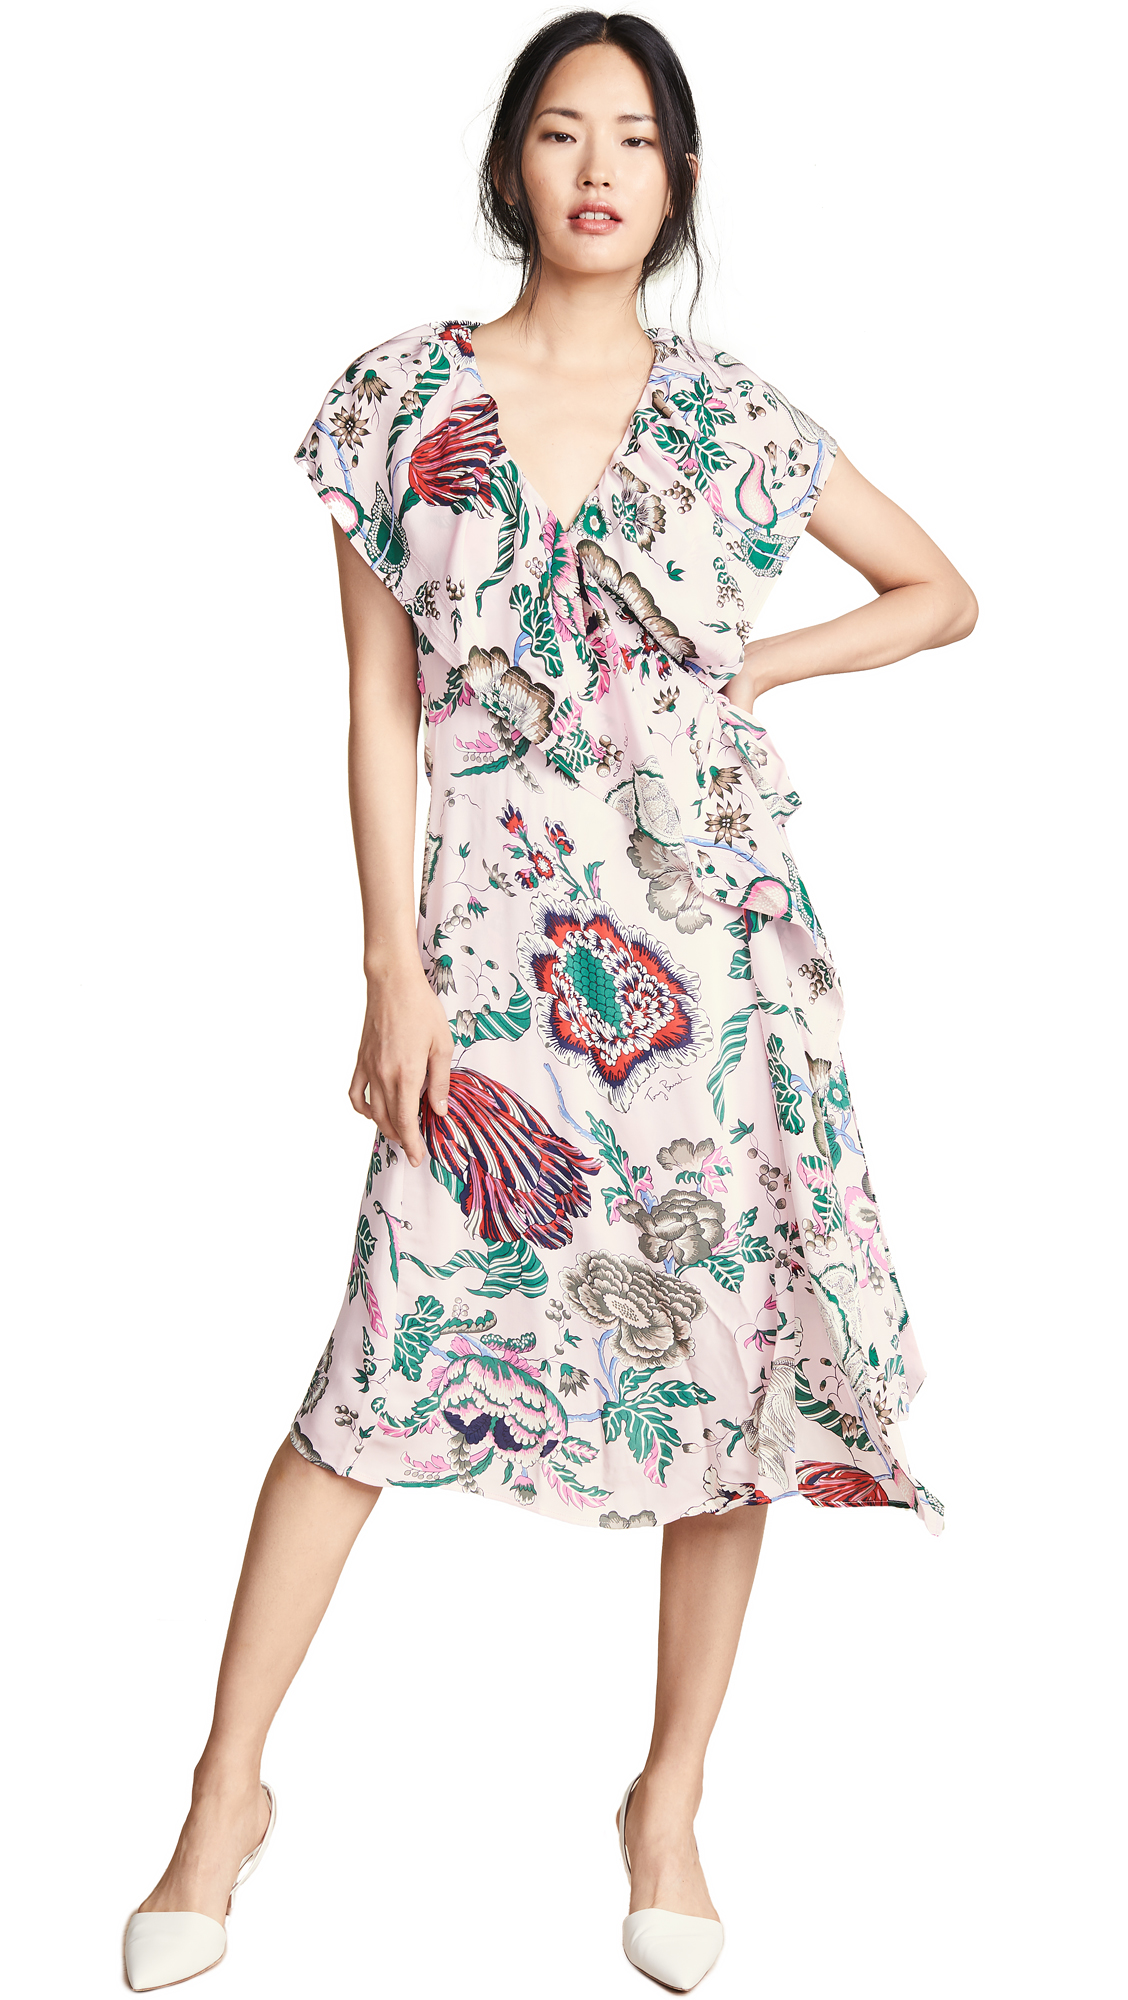 Tory Burch Adelia Dress - Pink Happy Times